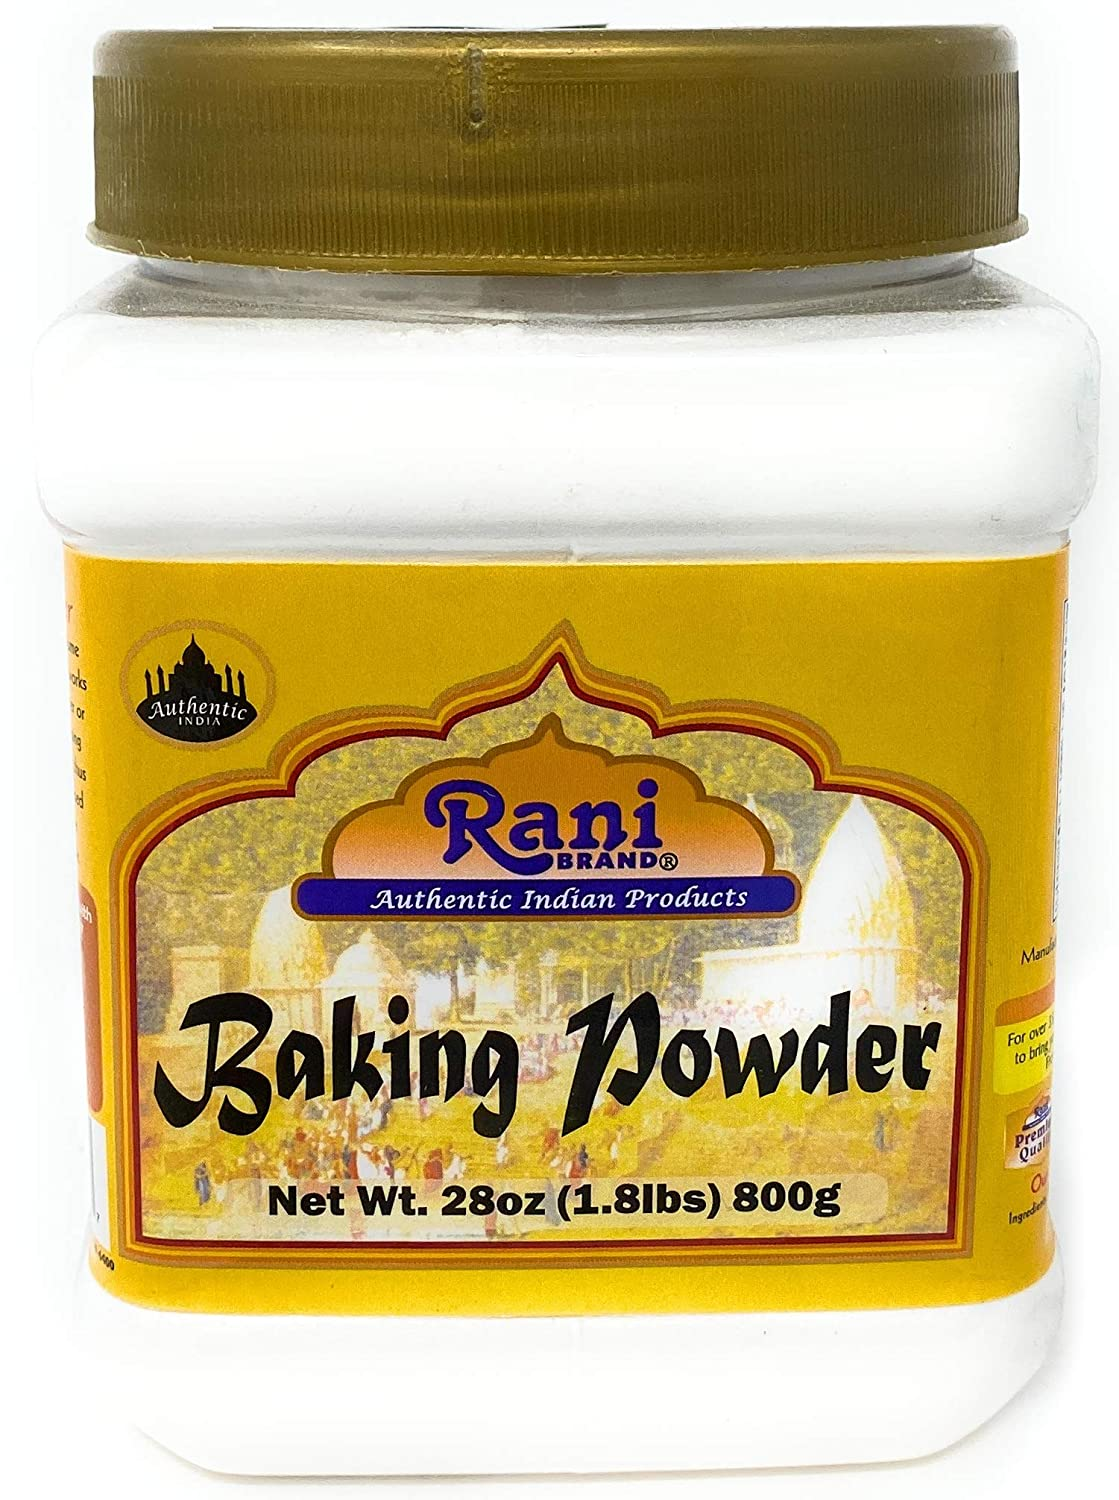 Rani Baking Powder 28 Ounce (800g) 1.8lbs ~ Used for cooking, NON-GMO | Indian Origin | Gluten Friendly